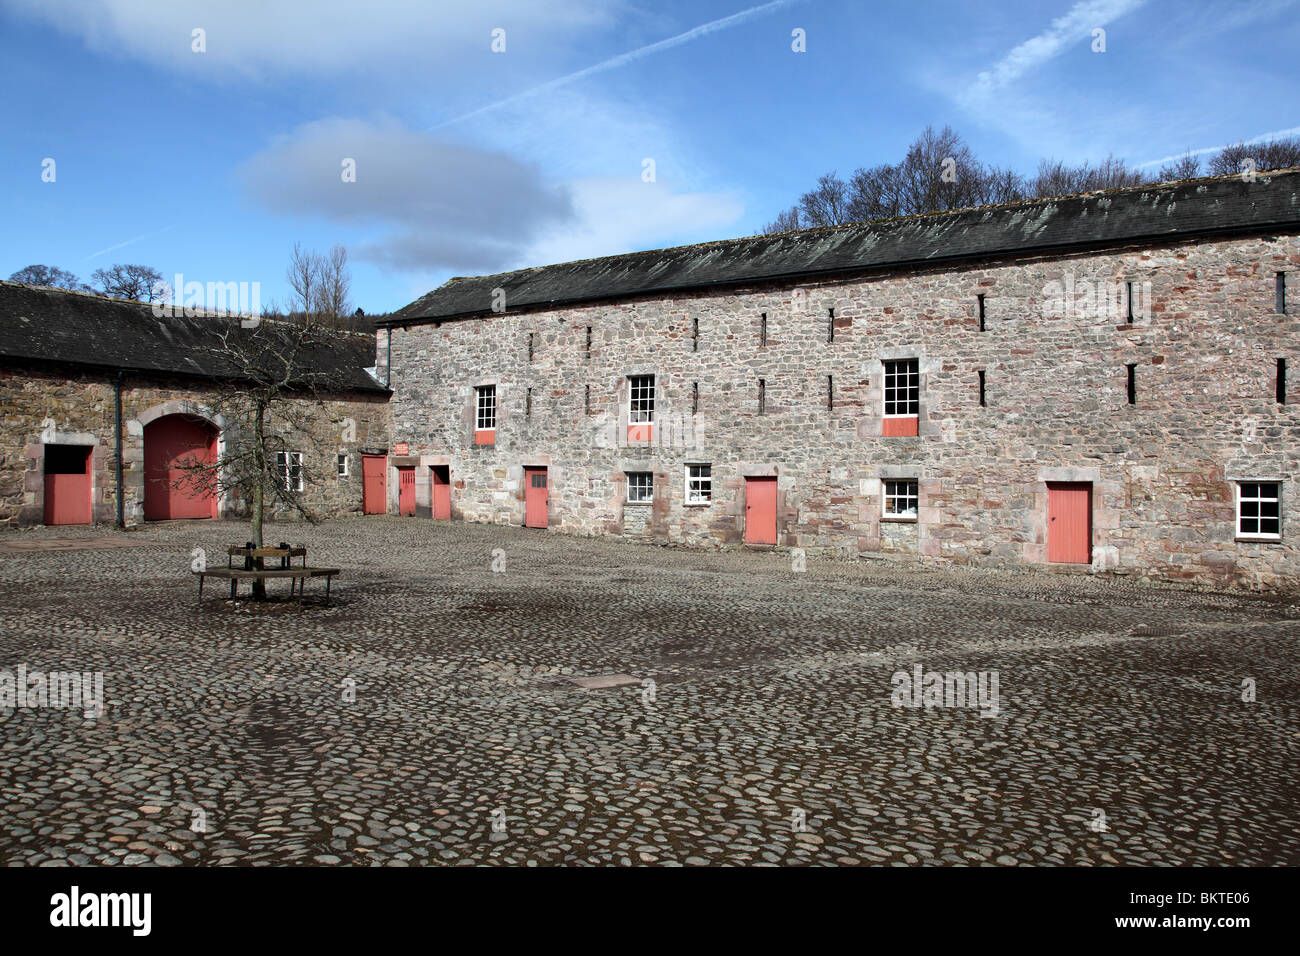 The Great Barn built during the 1500s in the courtyard of Dalemain House, Cumbria, England, UK - Stock Image